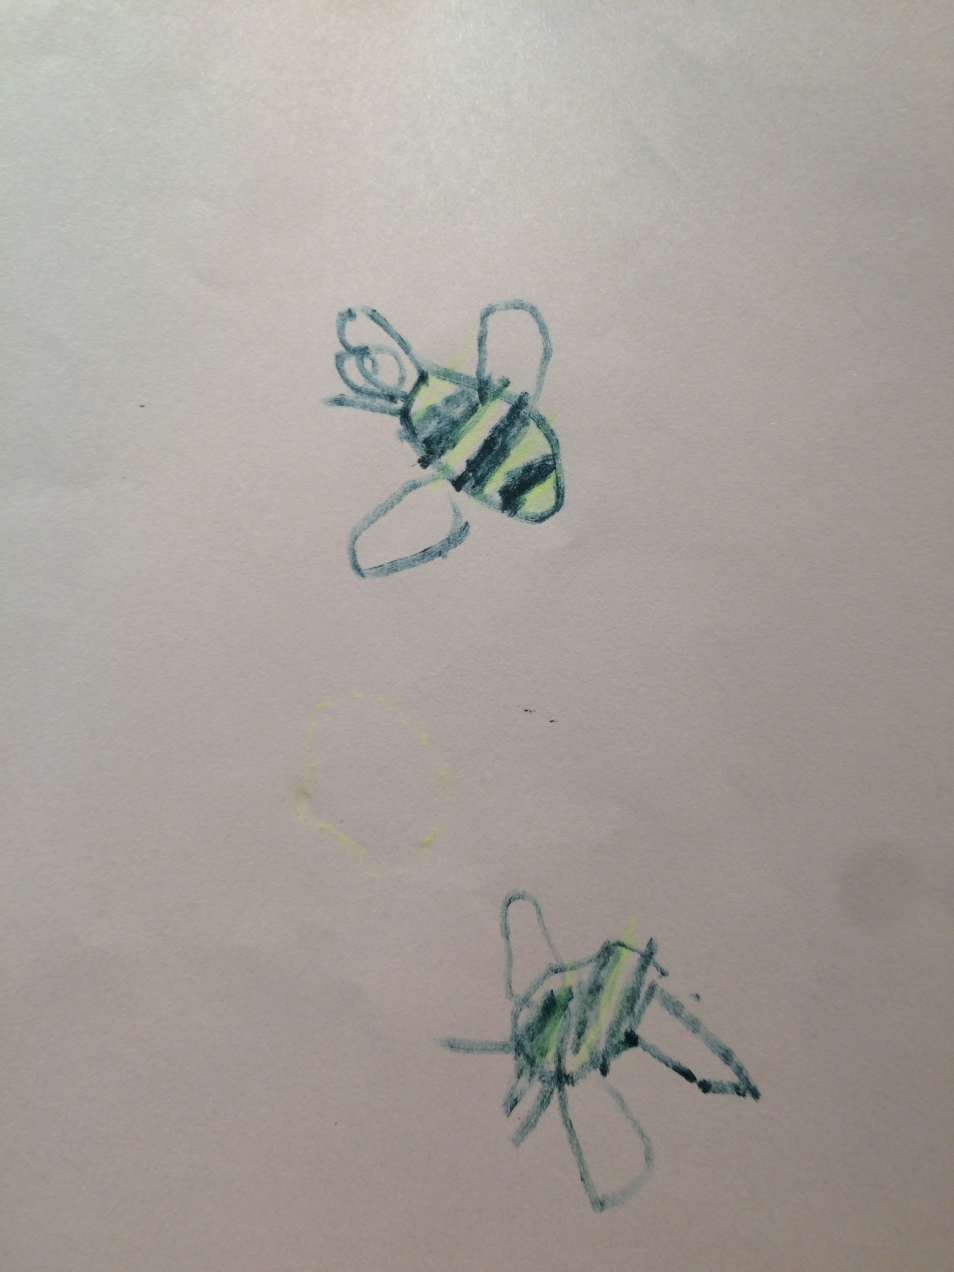 Bees, inspired by our Kurt Jackson exhibition, by Noah, aged 5